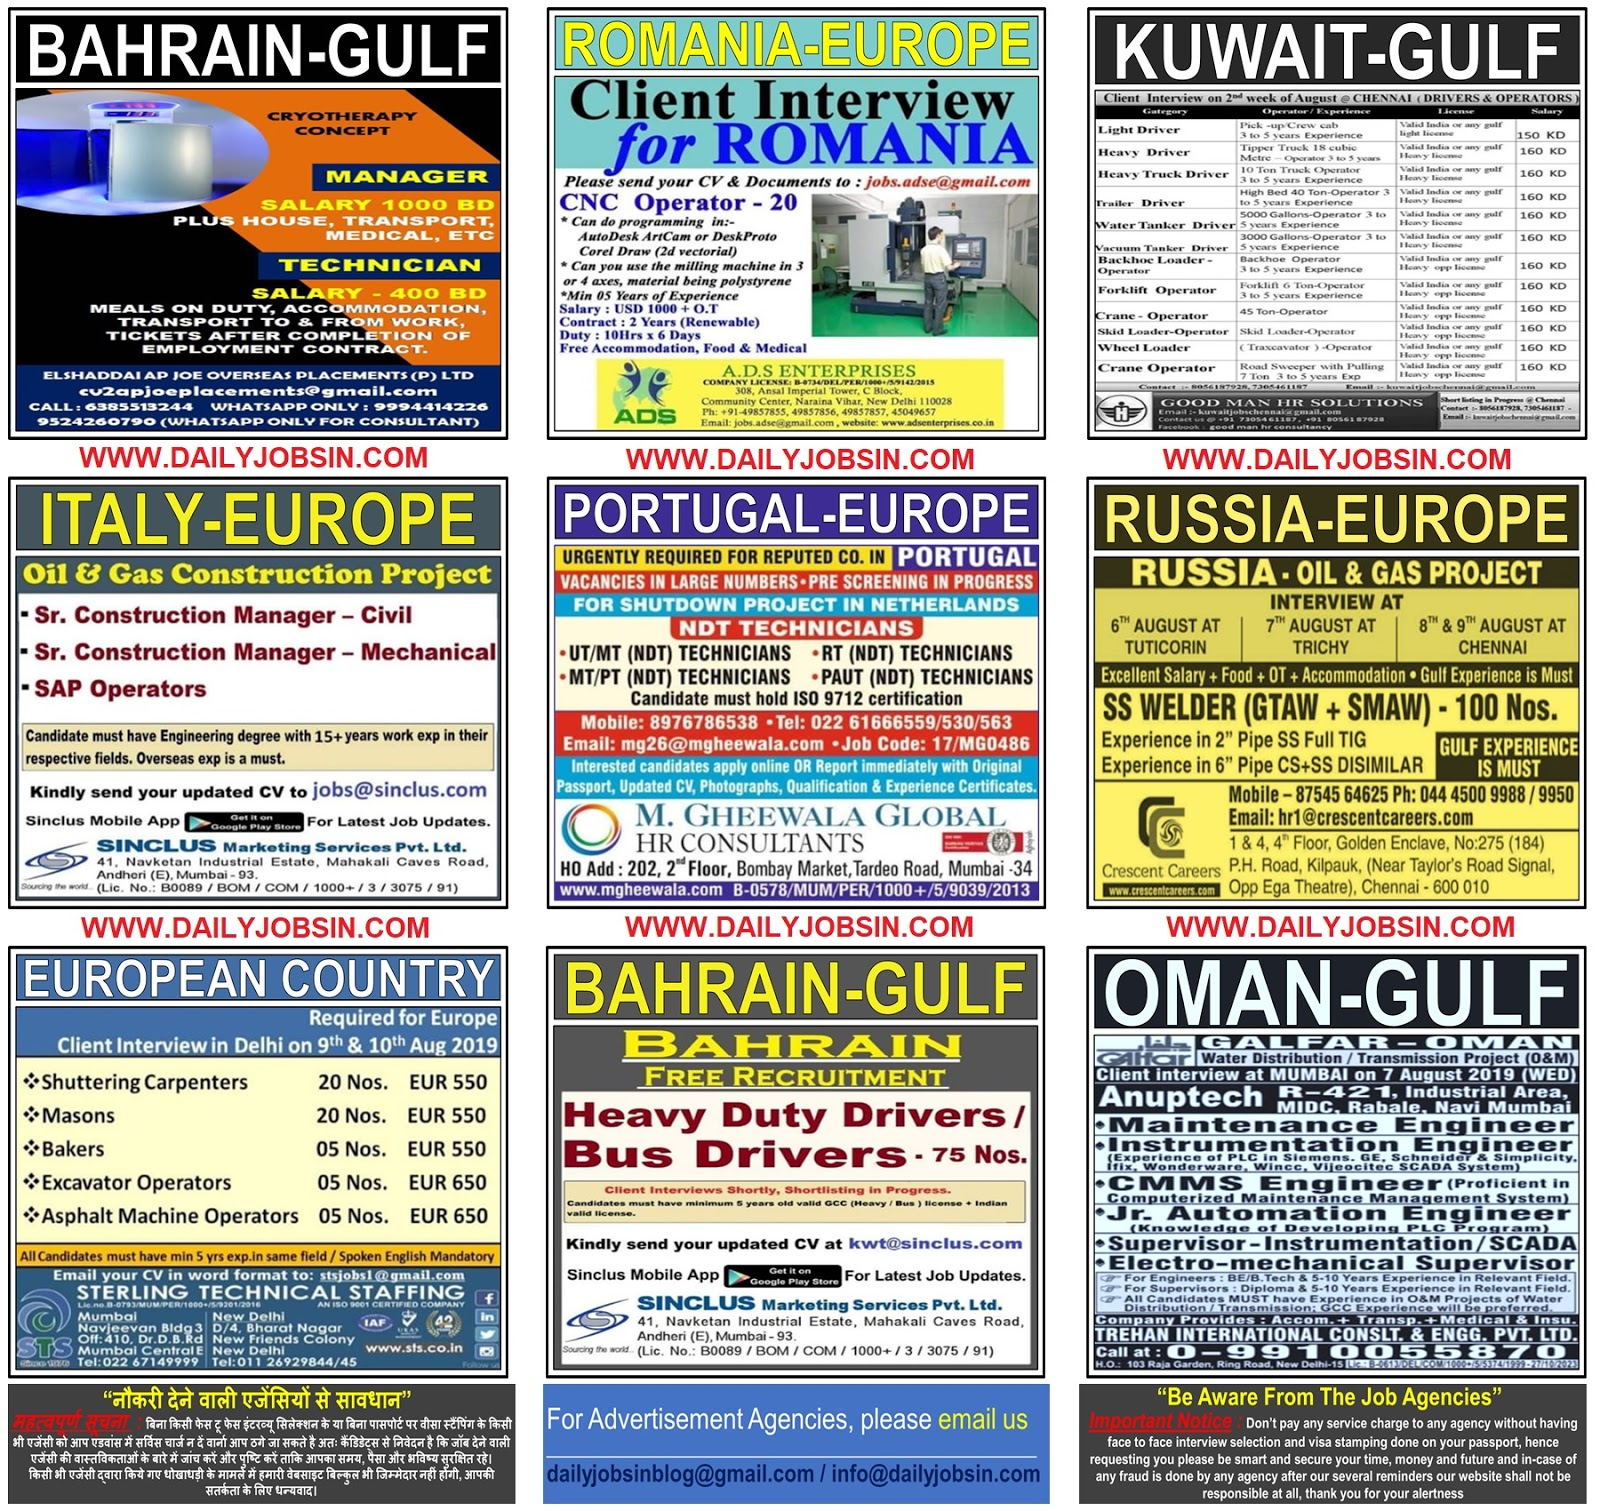 JOBS IN ITALY-EUROPE, PORTUGAL-EUROPE, RUSSIA-EUROPE, BAHRAIN